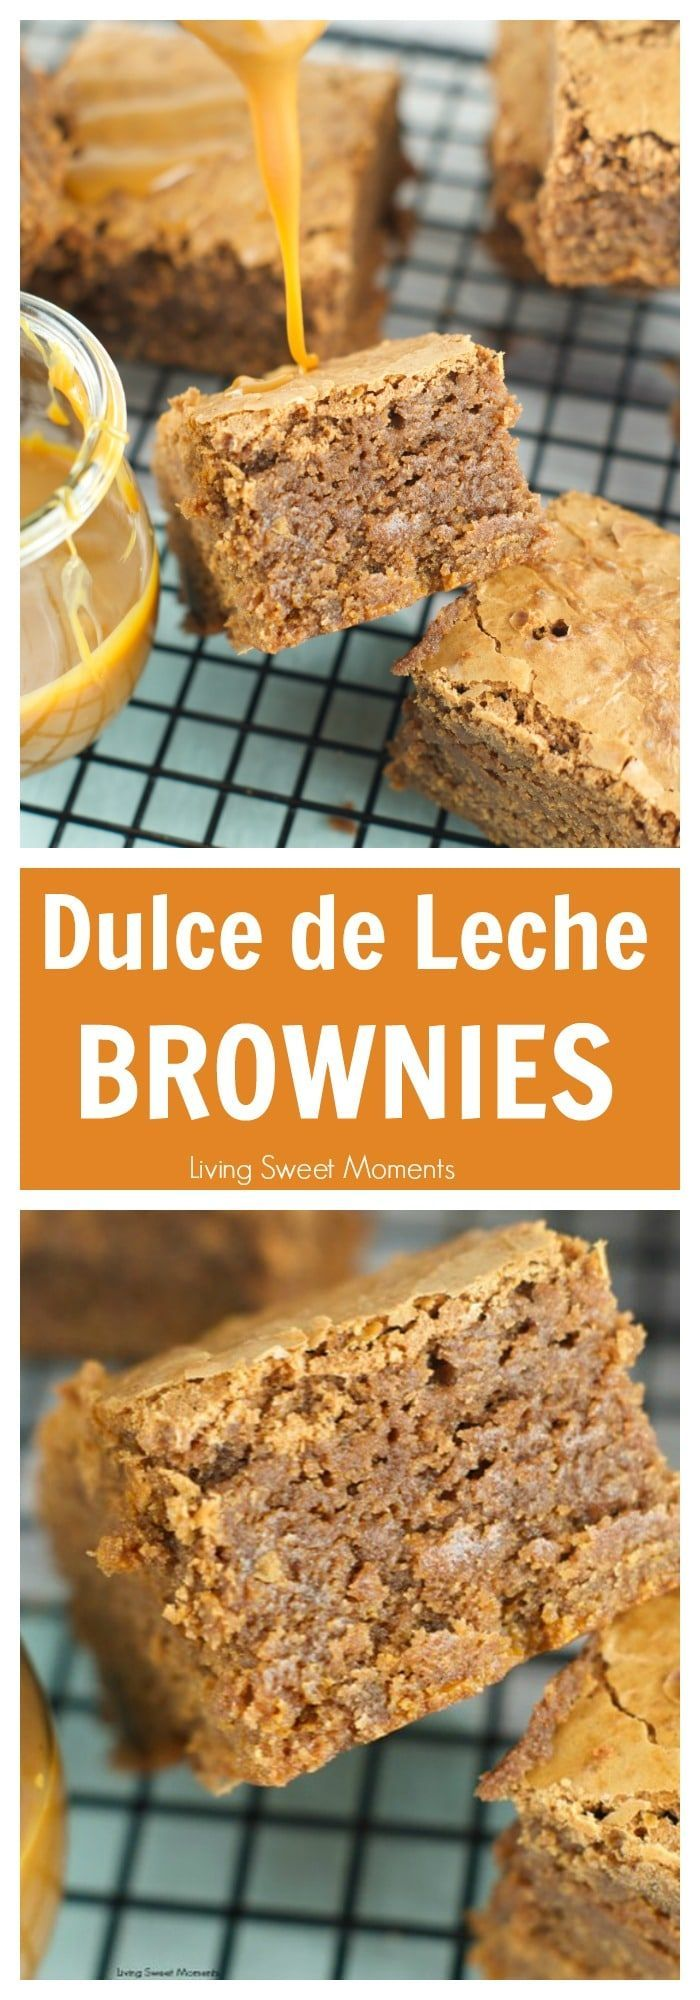 Dulce de leche brownies - Ooey Gooey fudgy brownies are filled with dulce de leche & chocolate chunks. The perfect dessert for any occasion.  Make them today!  More brownie recipes at livingsweetmoments.com via @Livingsmoments